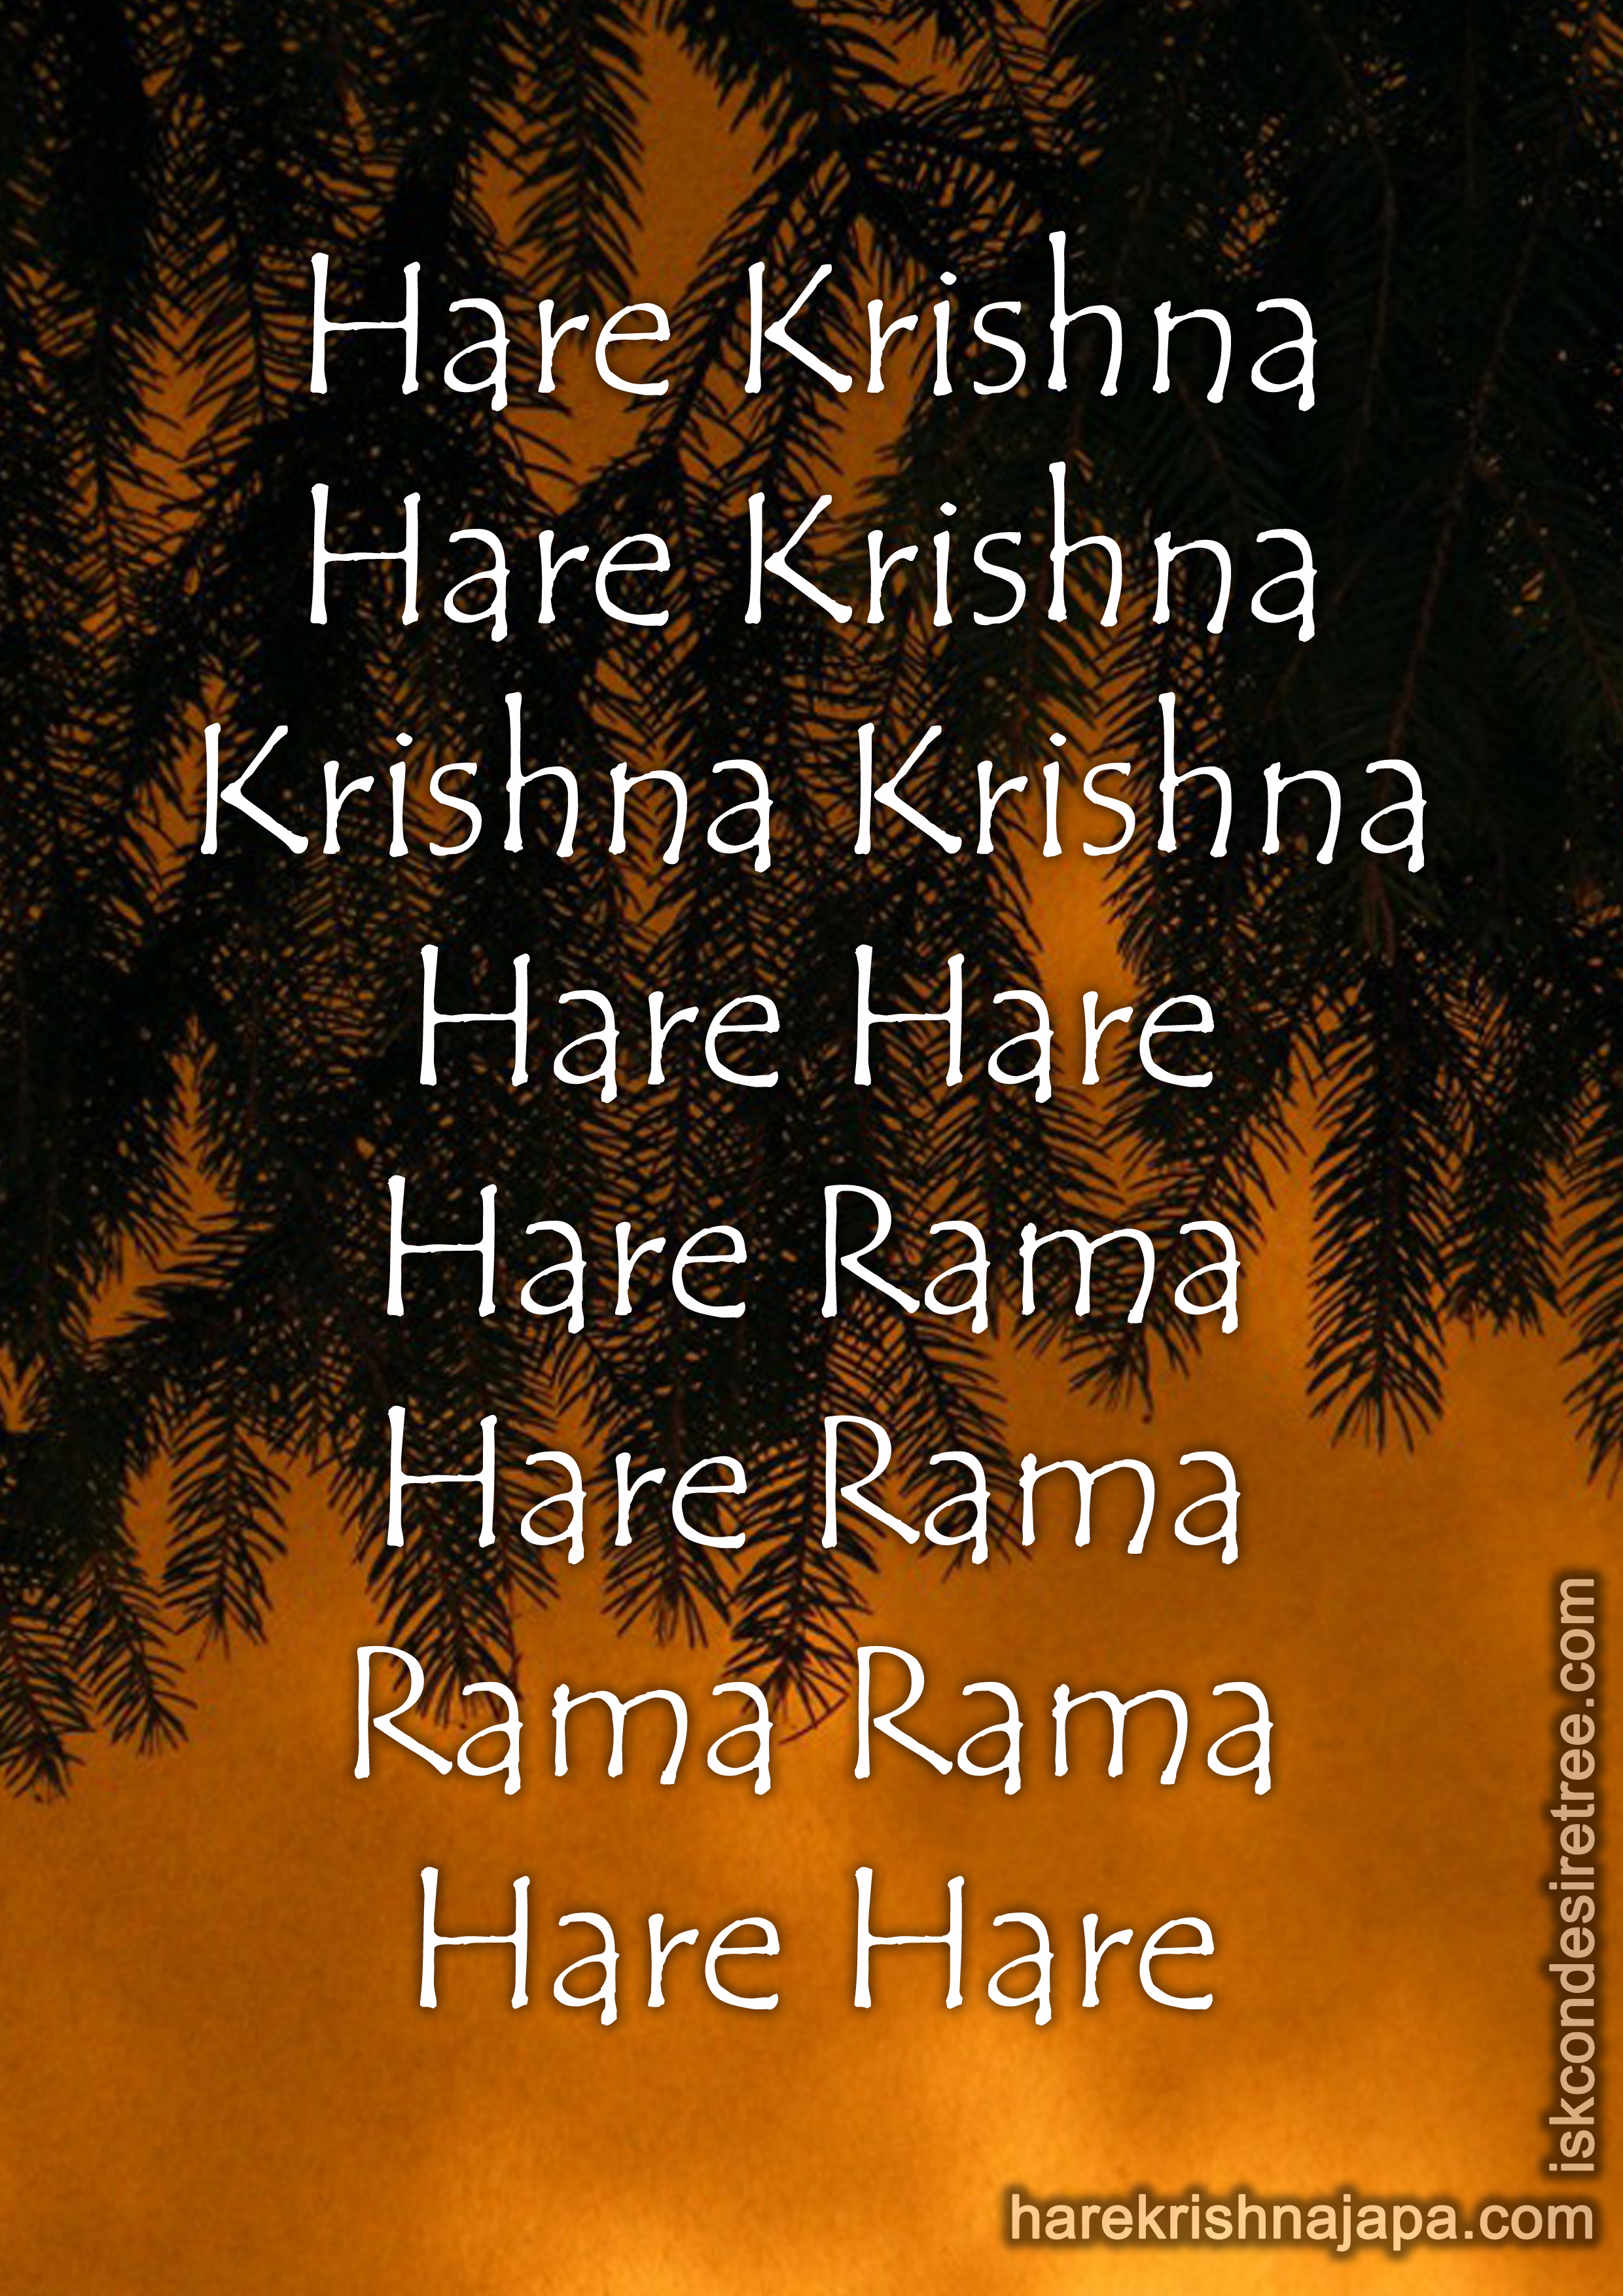 Iskcon hare krishna mantra download free mp3